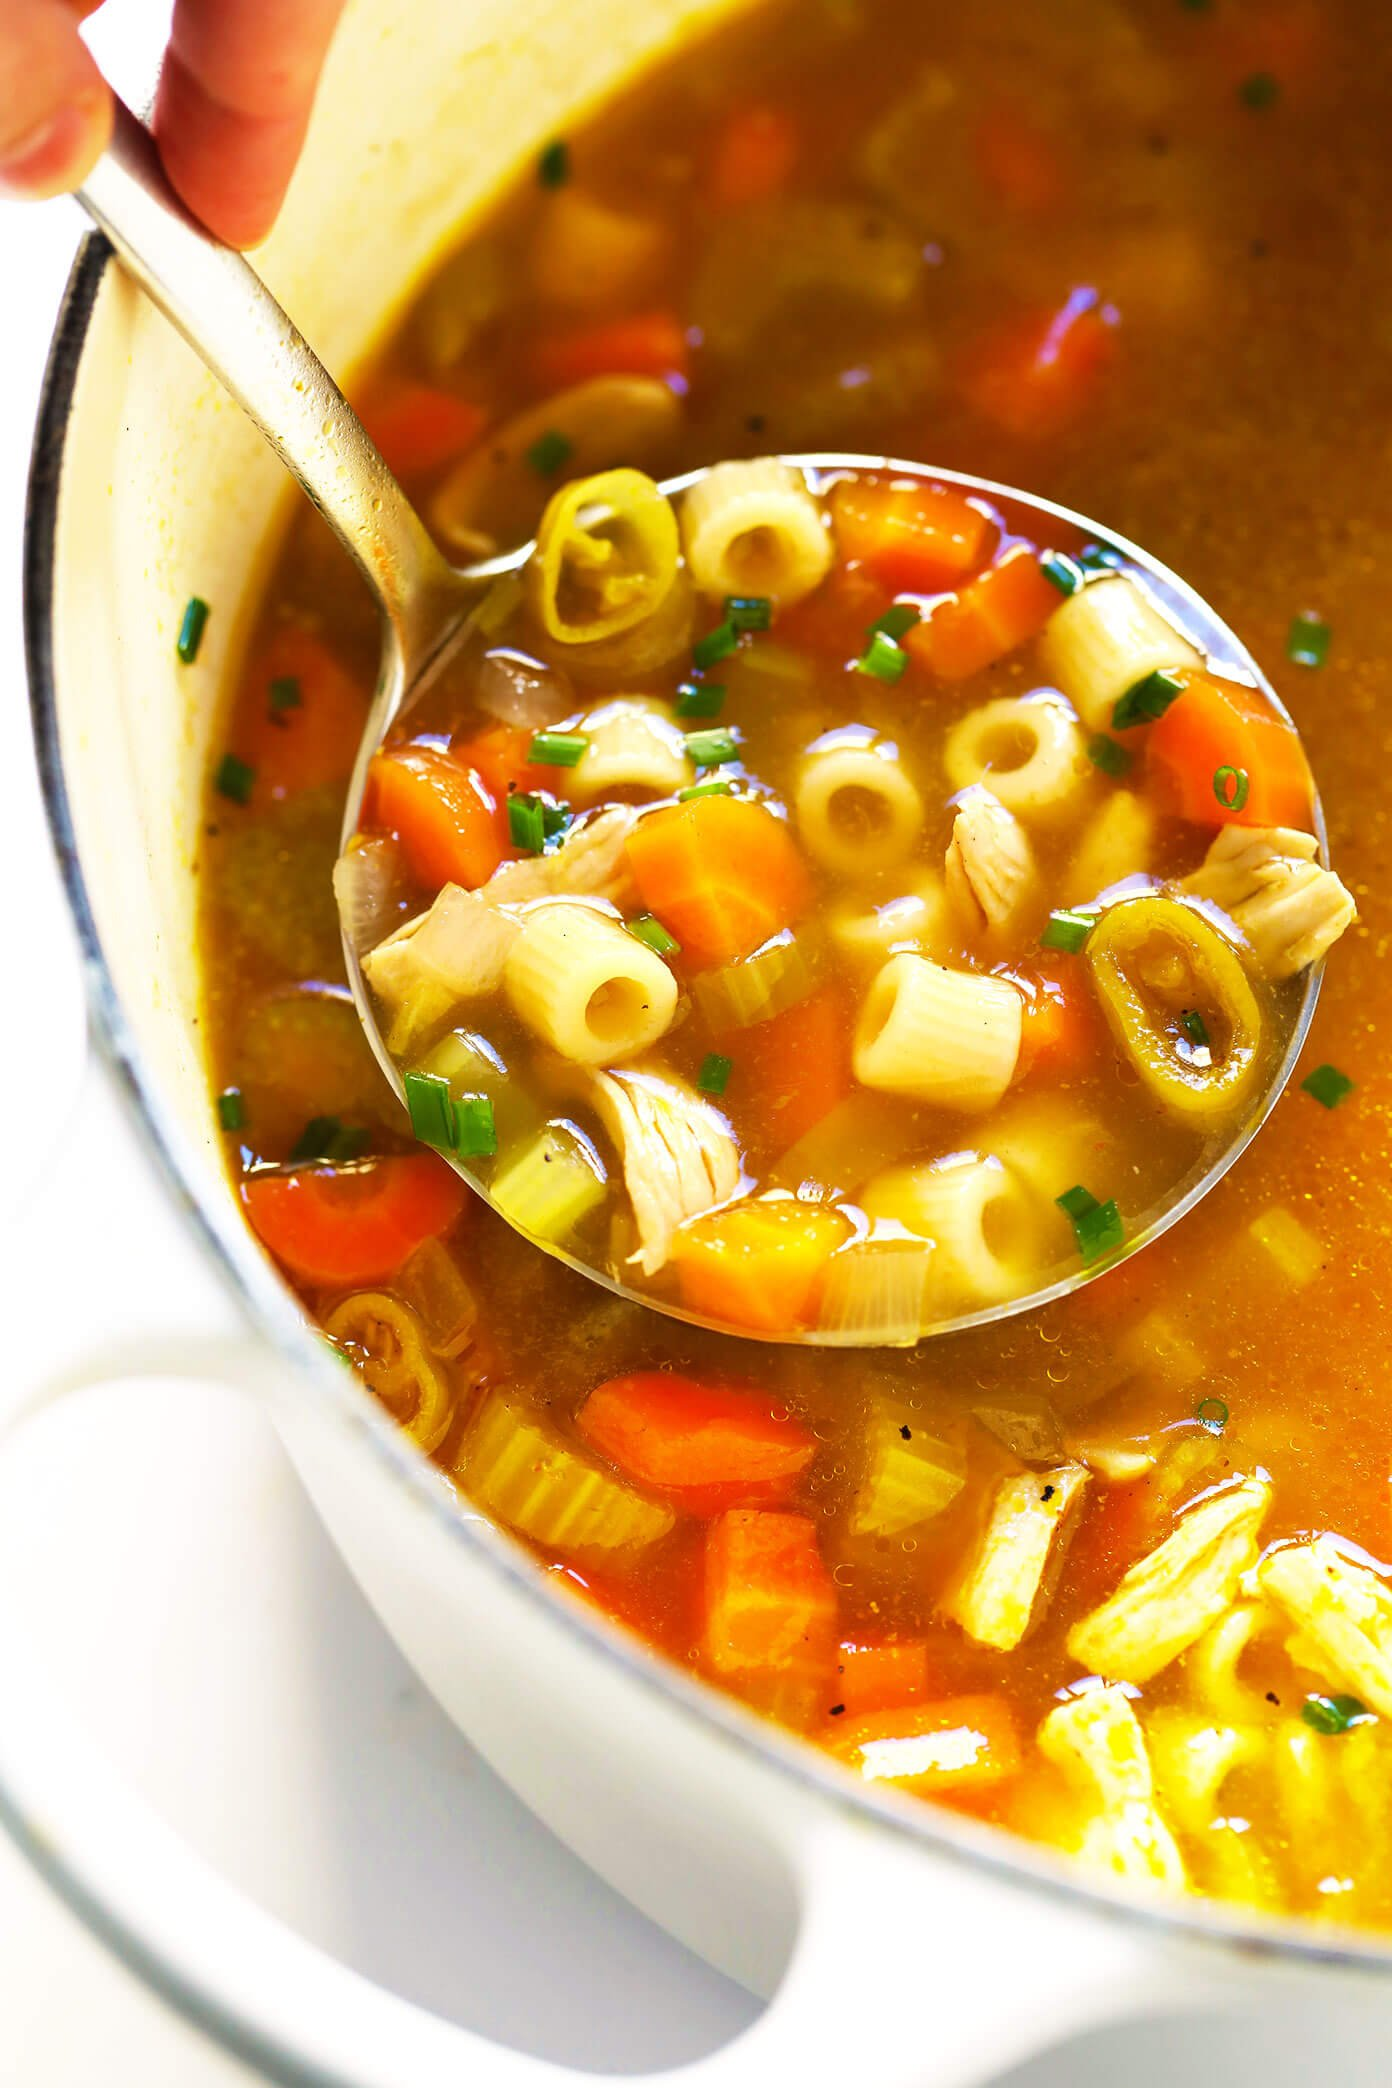 Chicken Noodle Soup recipe with Spicy Pepperoncini Peppers